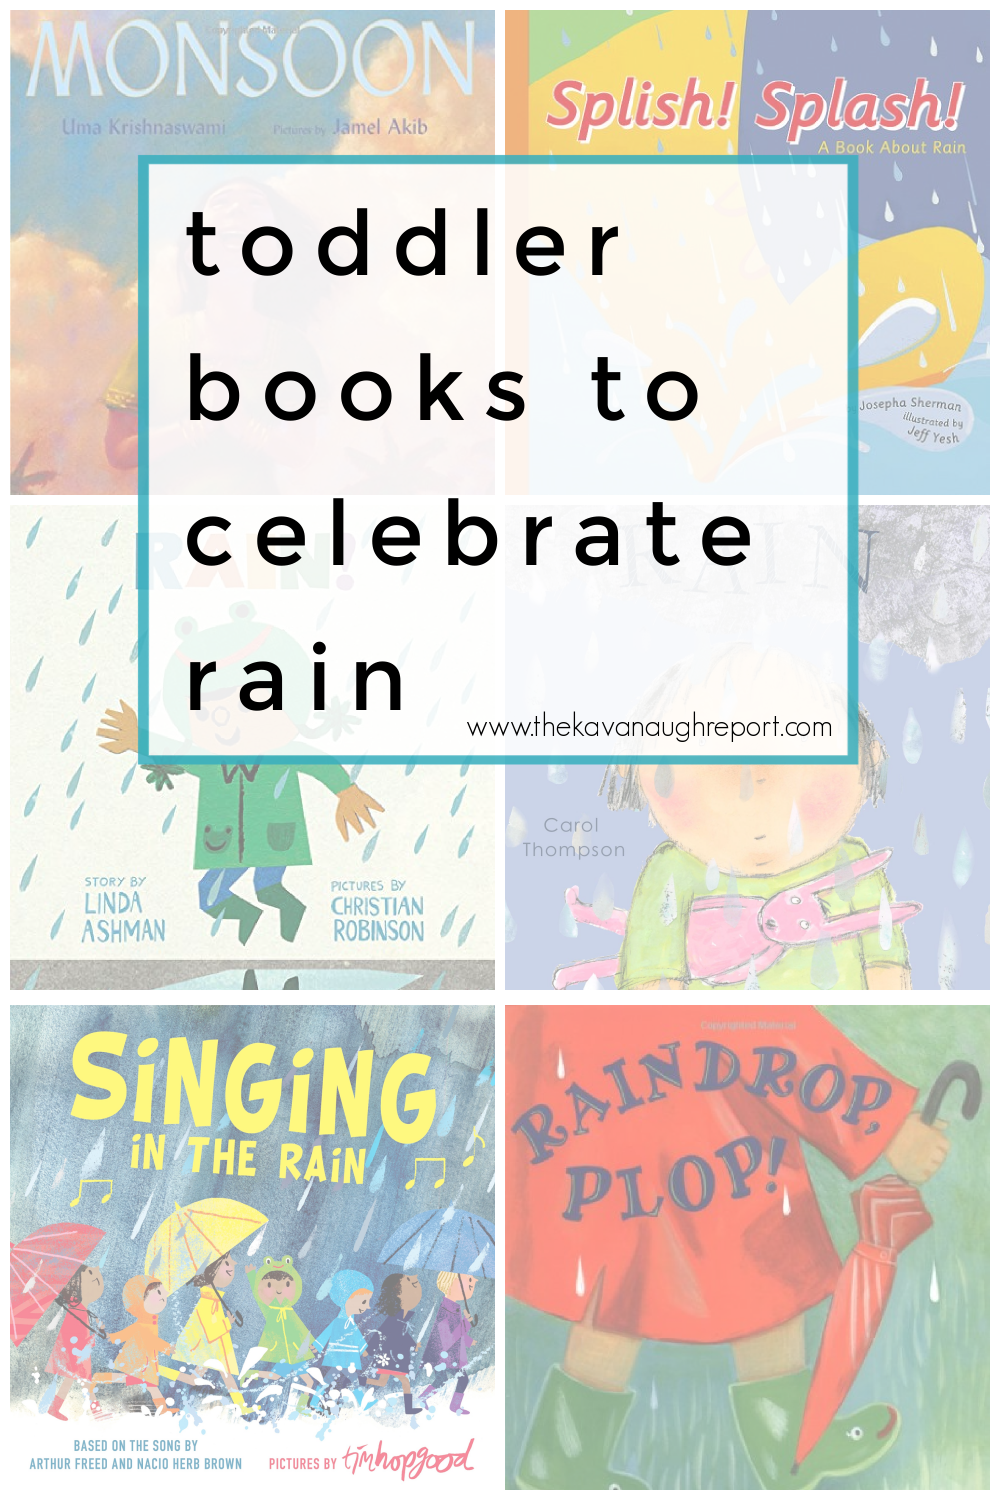 Montessori friendly books that celebrate rainy weather for toddlers and young children. These books help remind you of the beauty of getting outside